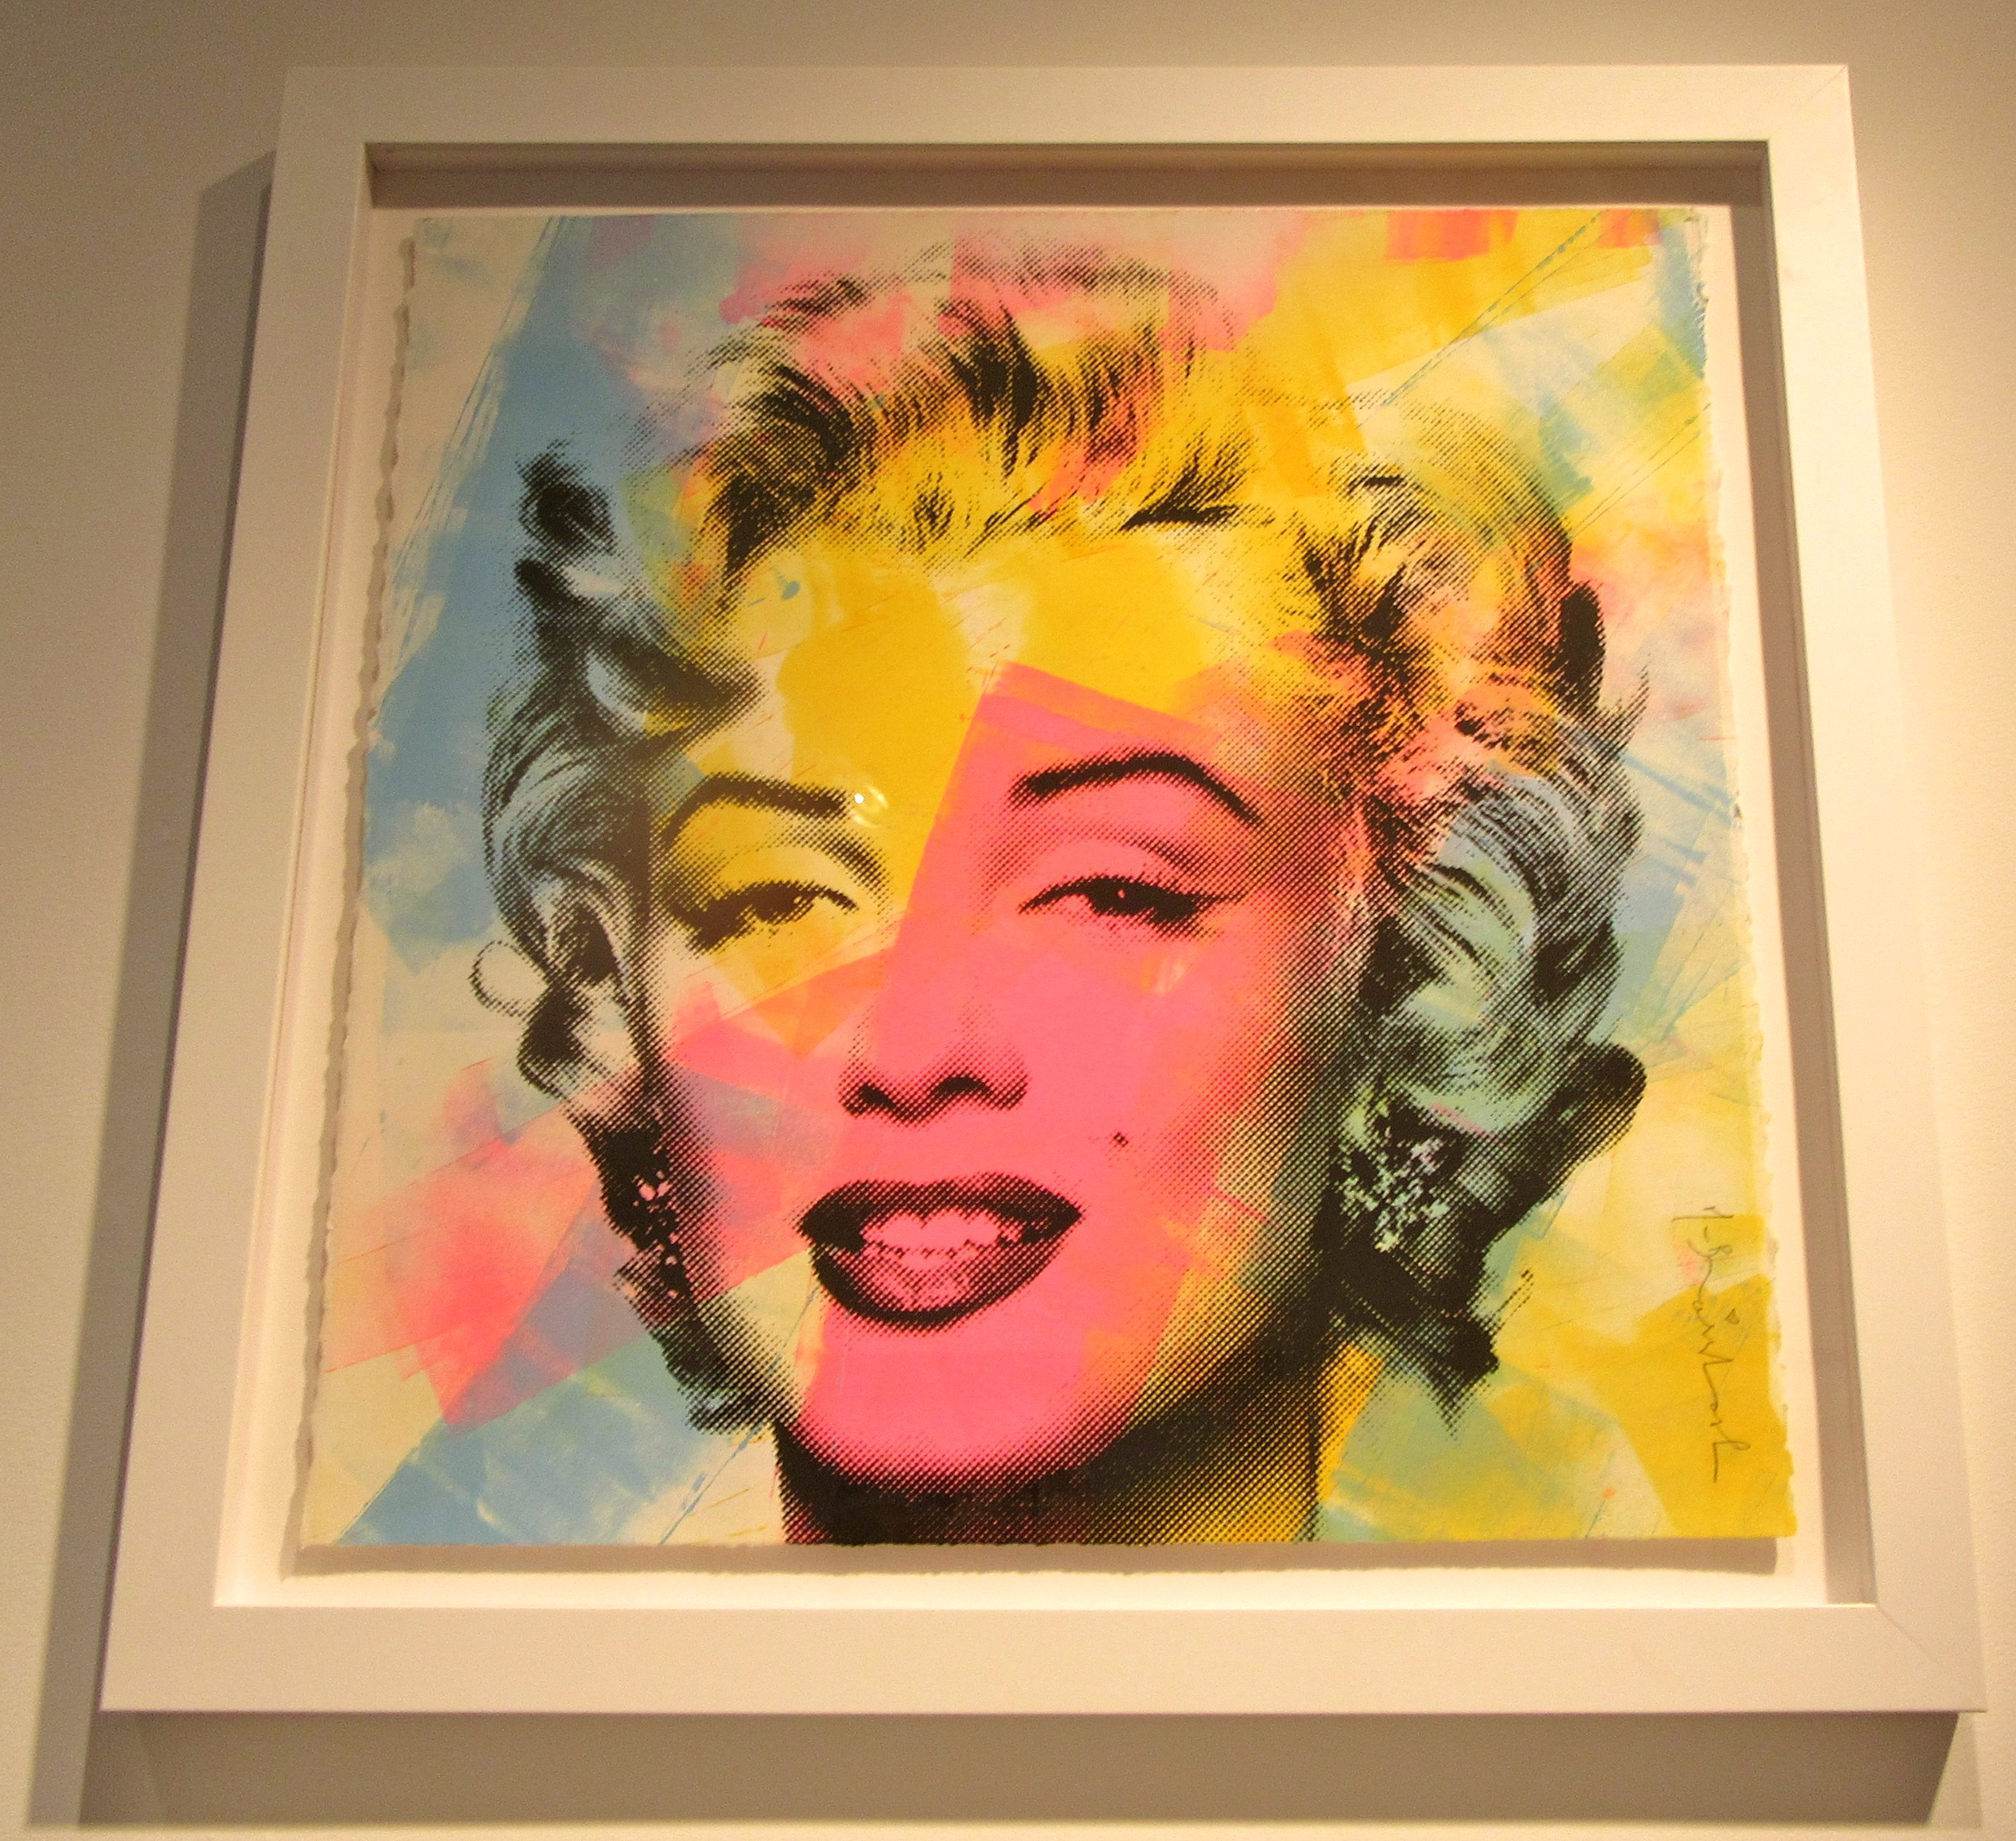 brainwashed  new works and old favorites by mr  brainwash at taglialatella galleries